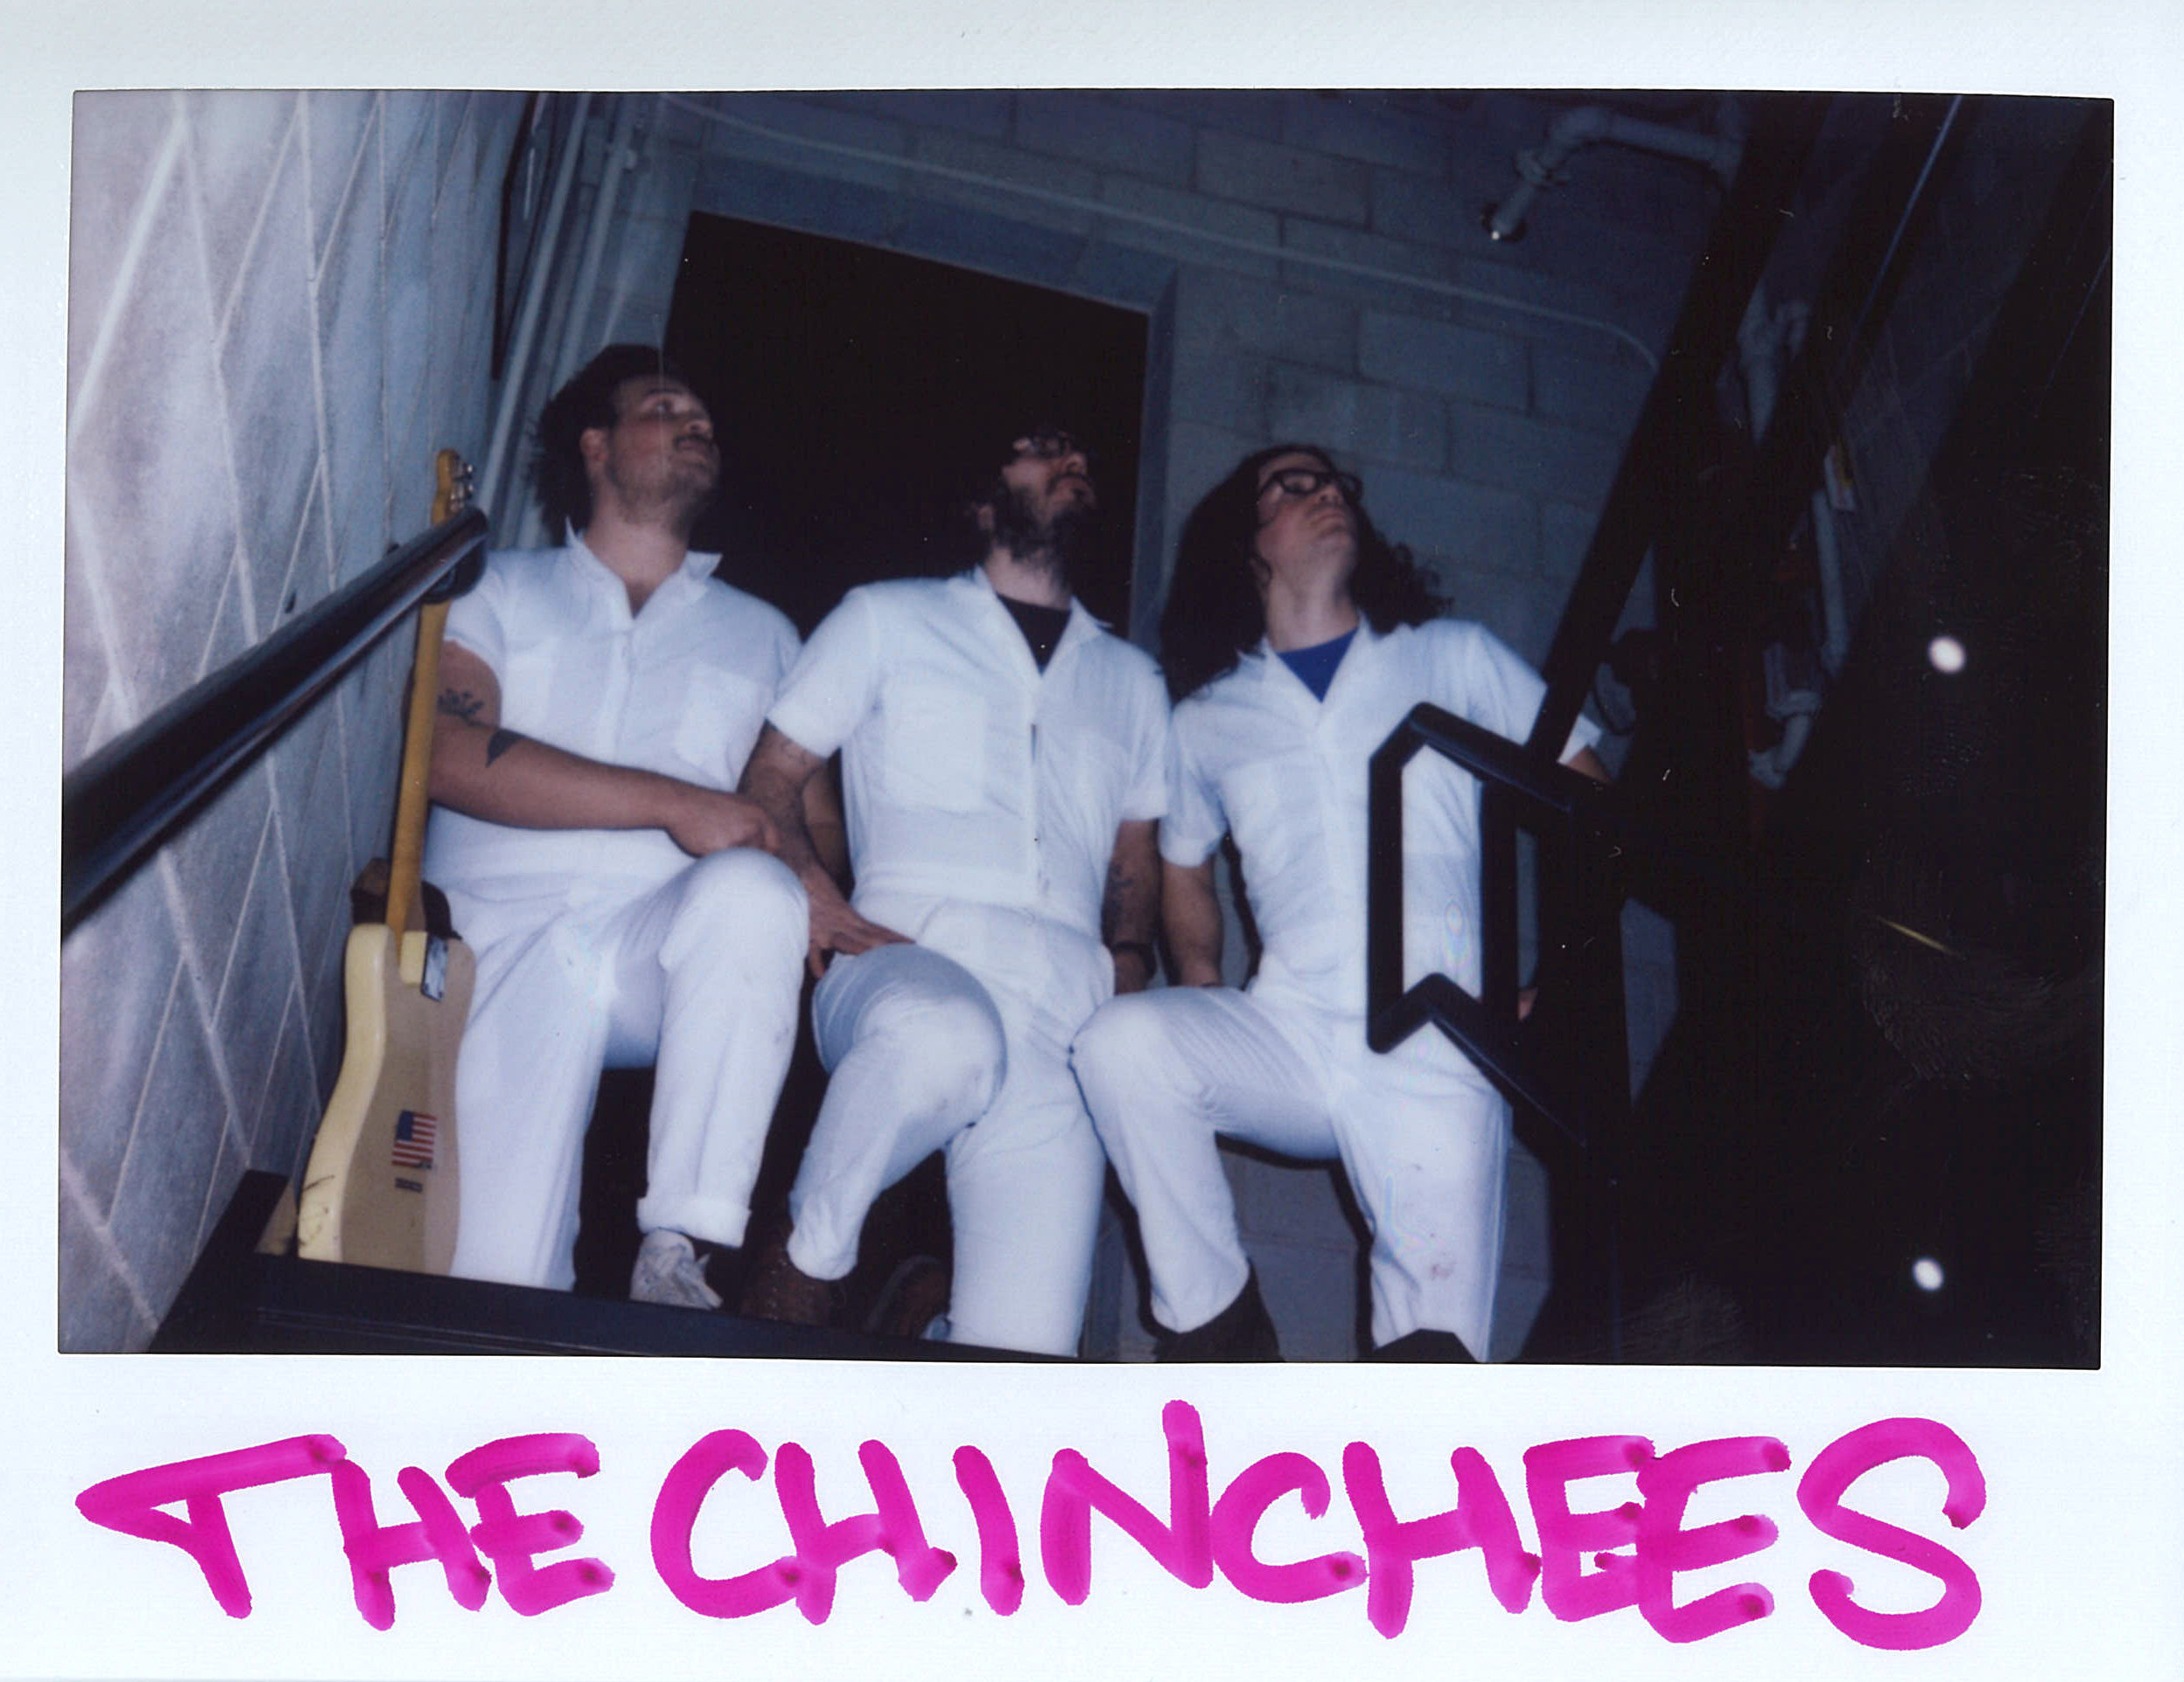 The Chinchees